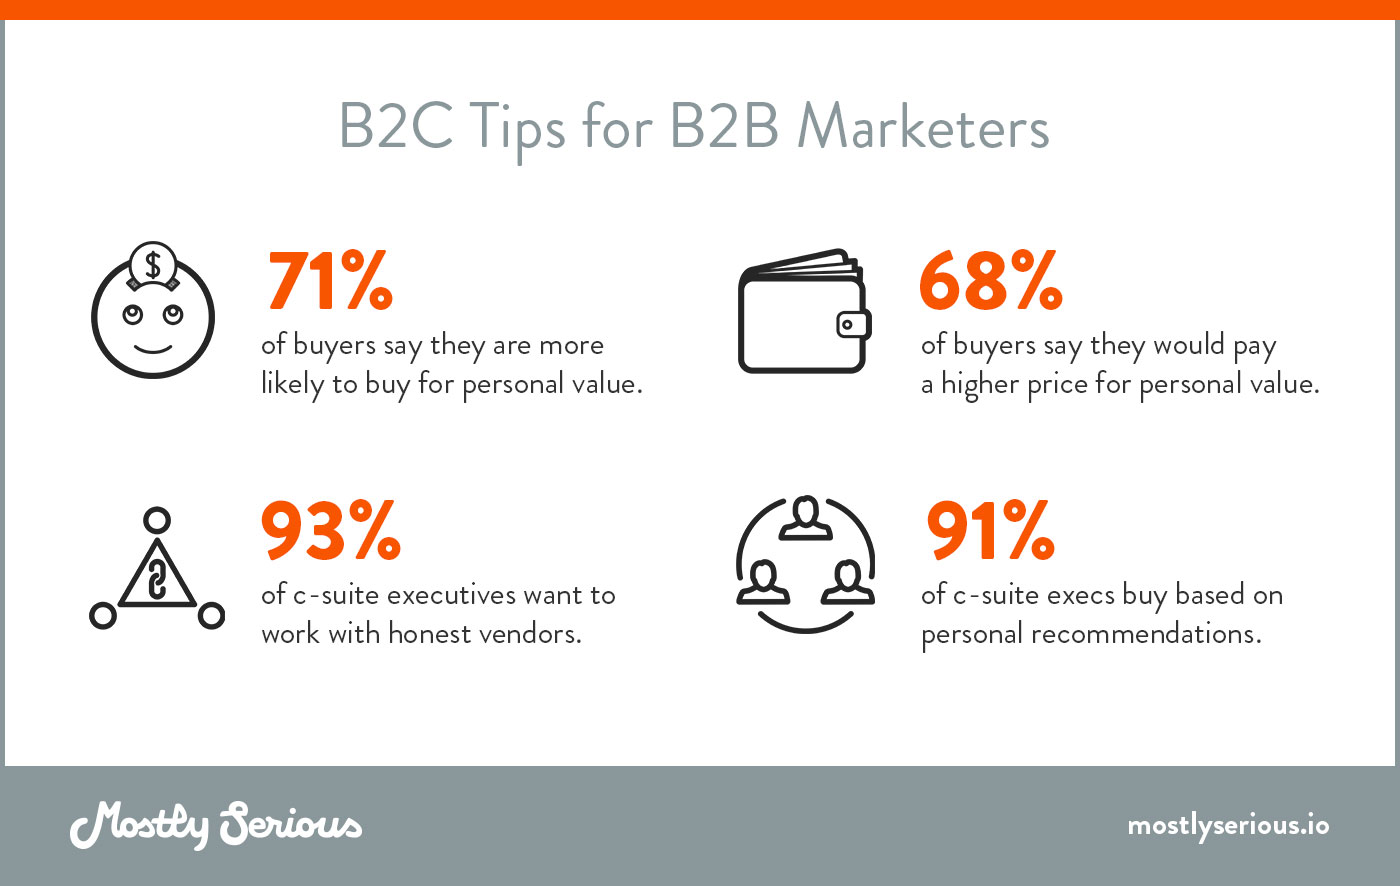 B2C Tips for B2B Marketers